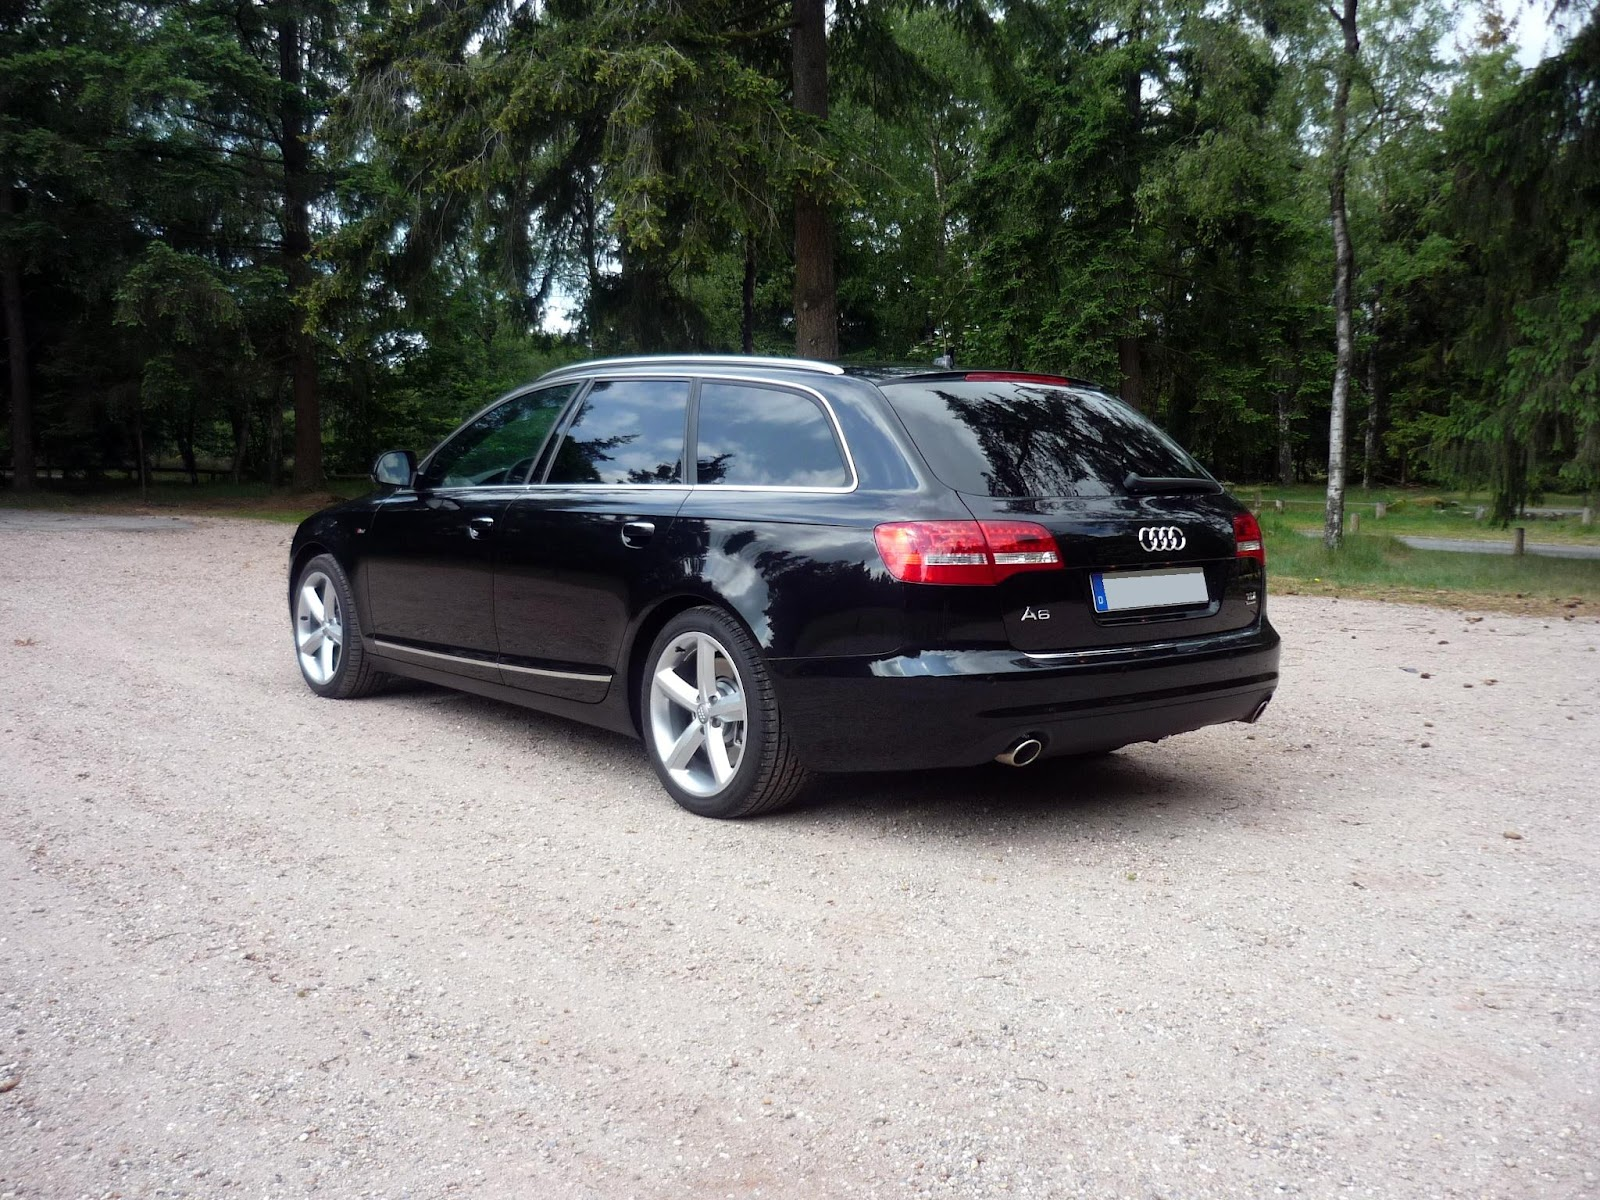 A Small Picture Update In The Al Audi A6 4f Pictures Of An 2017 3 0 Tdi Avant S Line Have Been Added This Particular Has